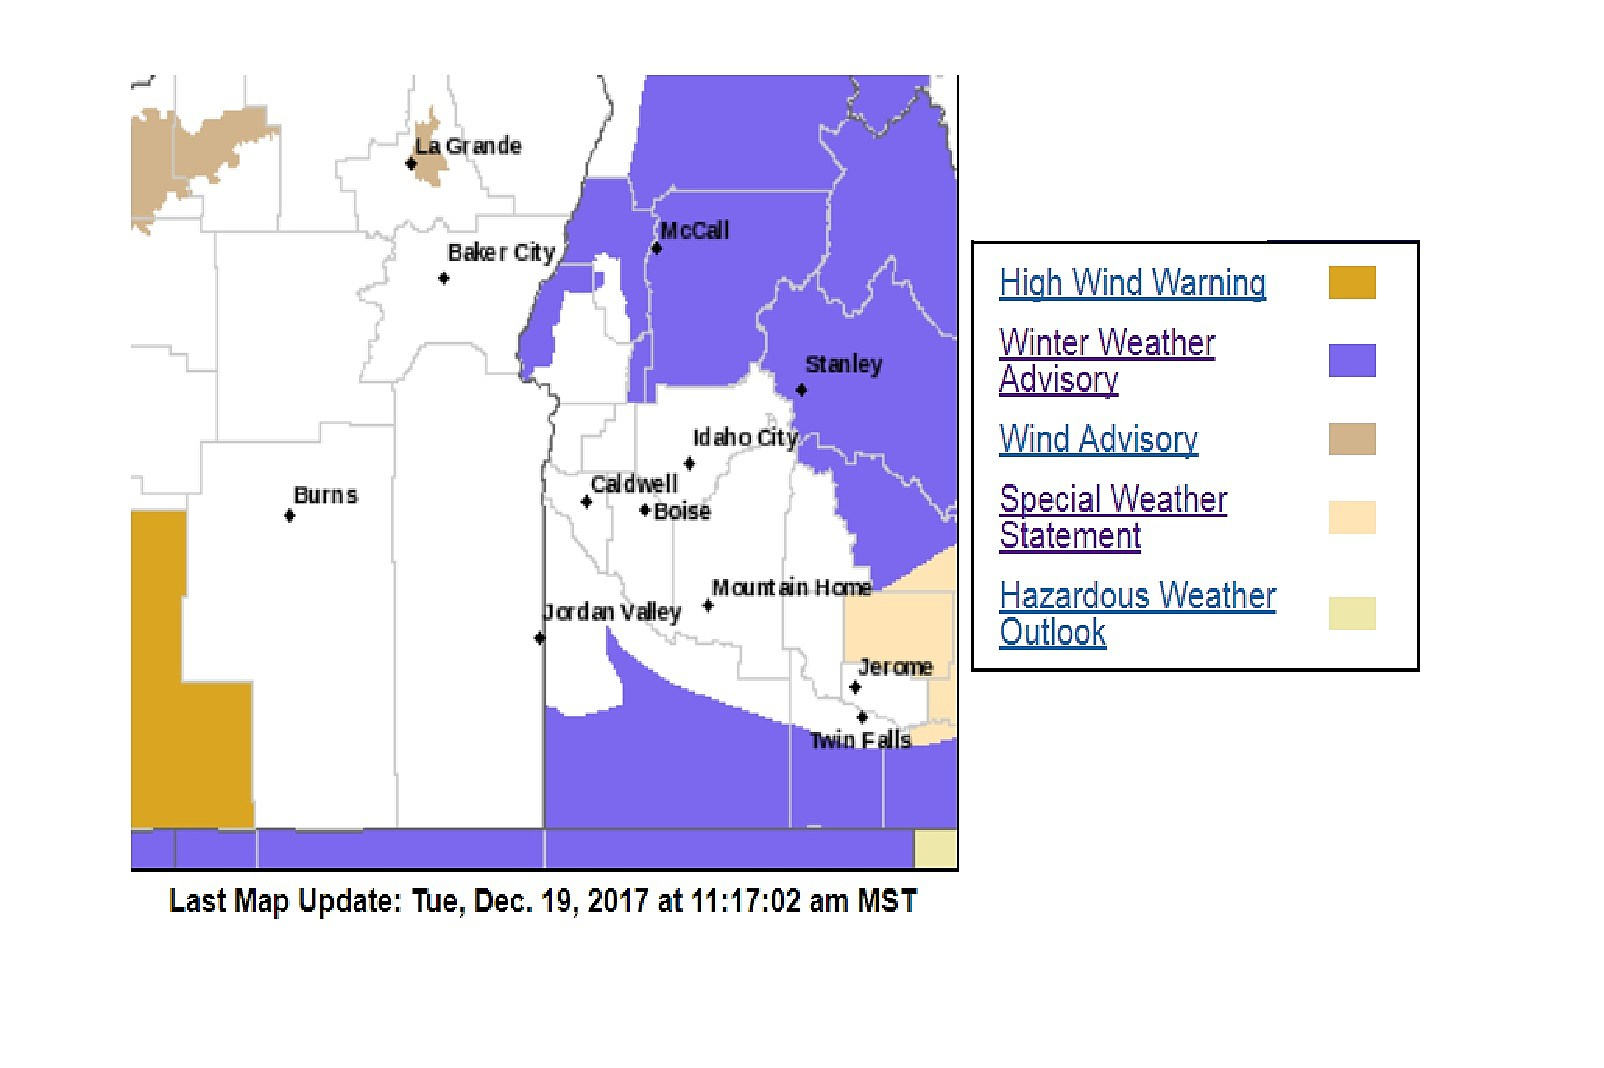 Winter Weather Advisory Issued for Southern Idaho